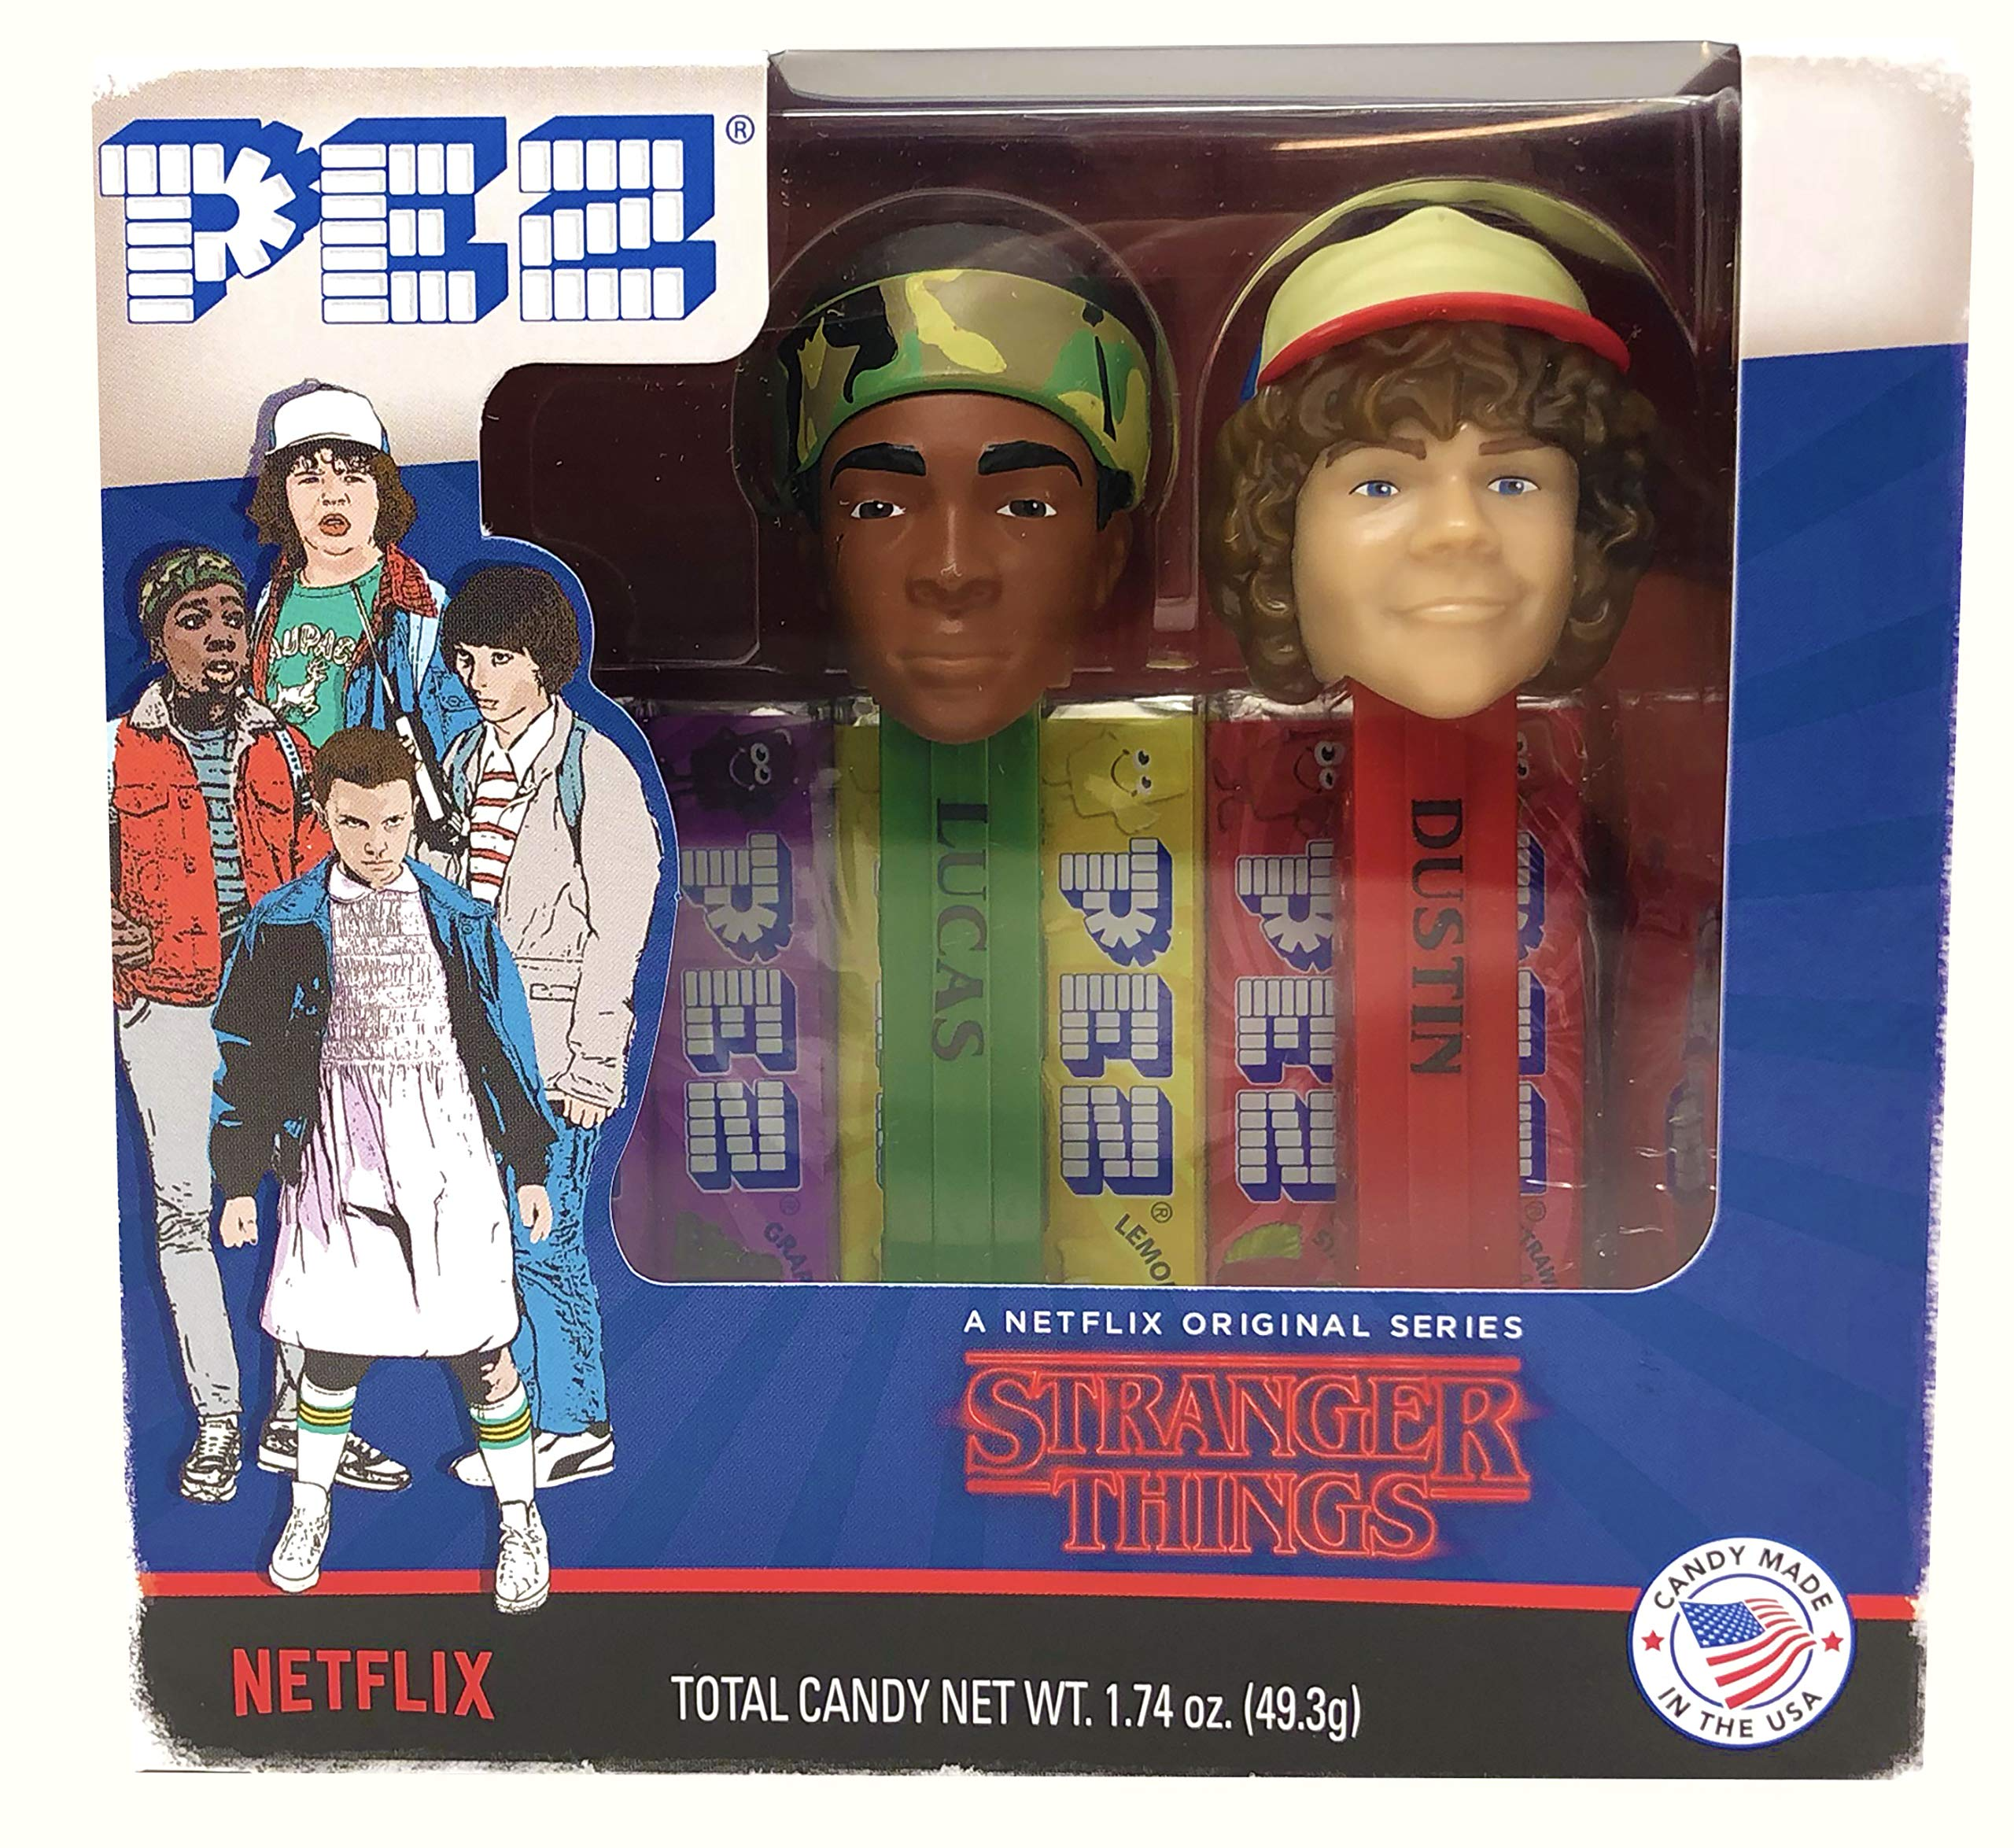 PEZ Stranger Things Gift Set Dispensers Plus 6 Candy Refills - Lucas and Dustin Pez Dispensers